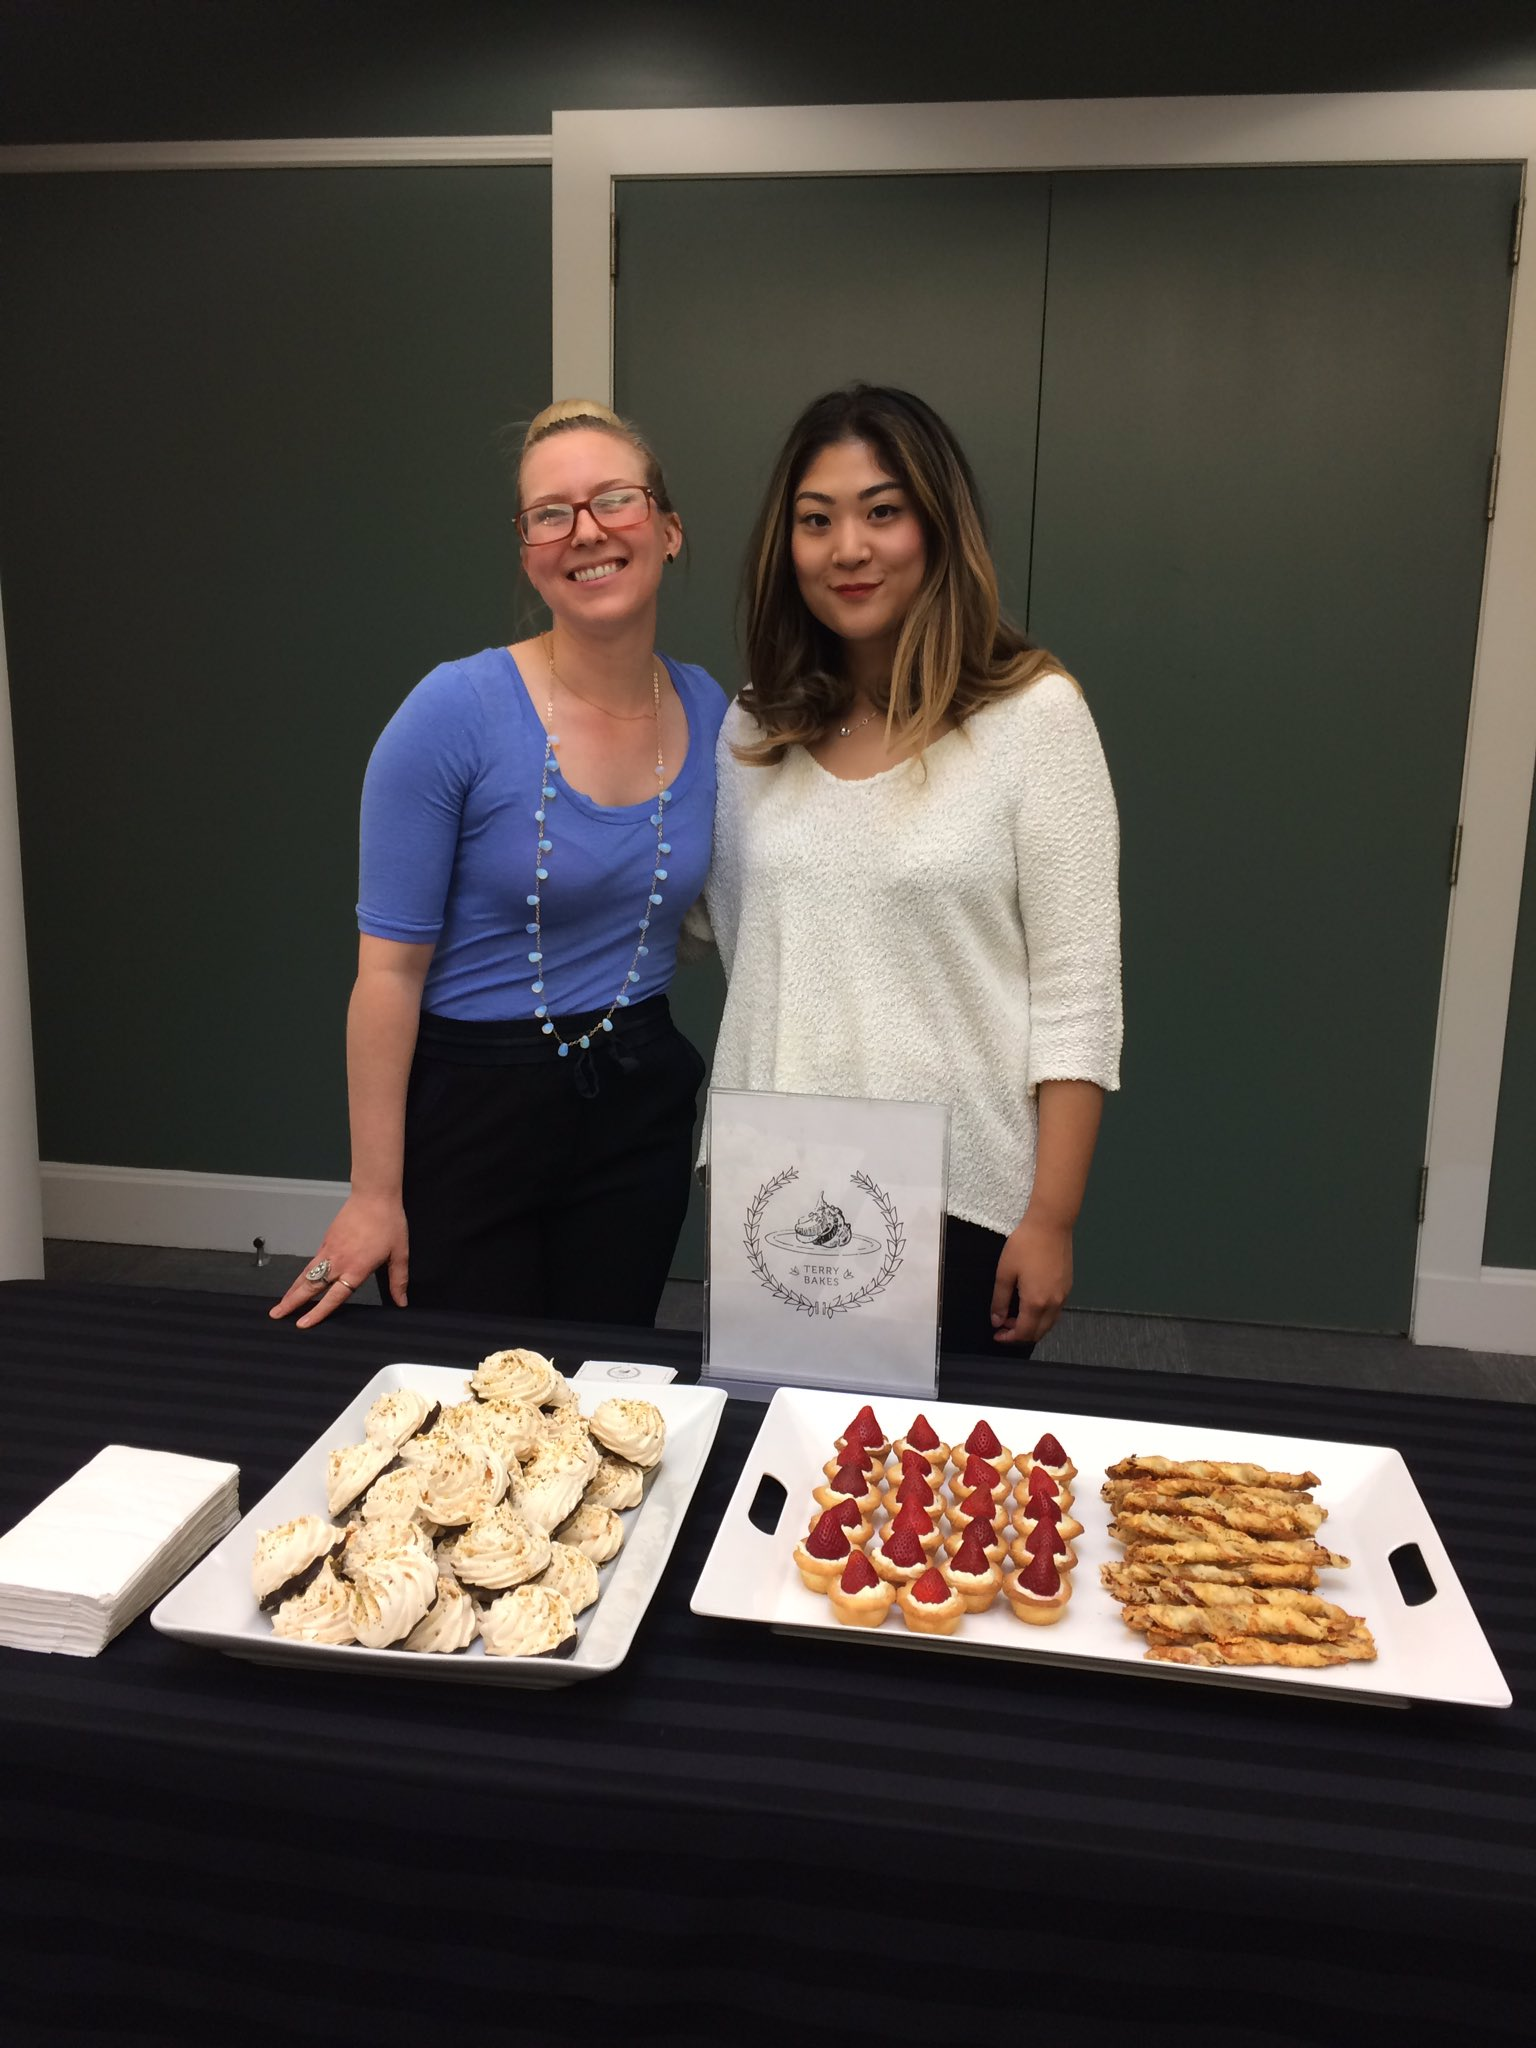 We have delicious treats tonight at our Summer Reads Threesome Book Club thanks to #TerryBakes https://t.co/Cf2Obo8MsE